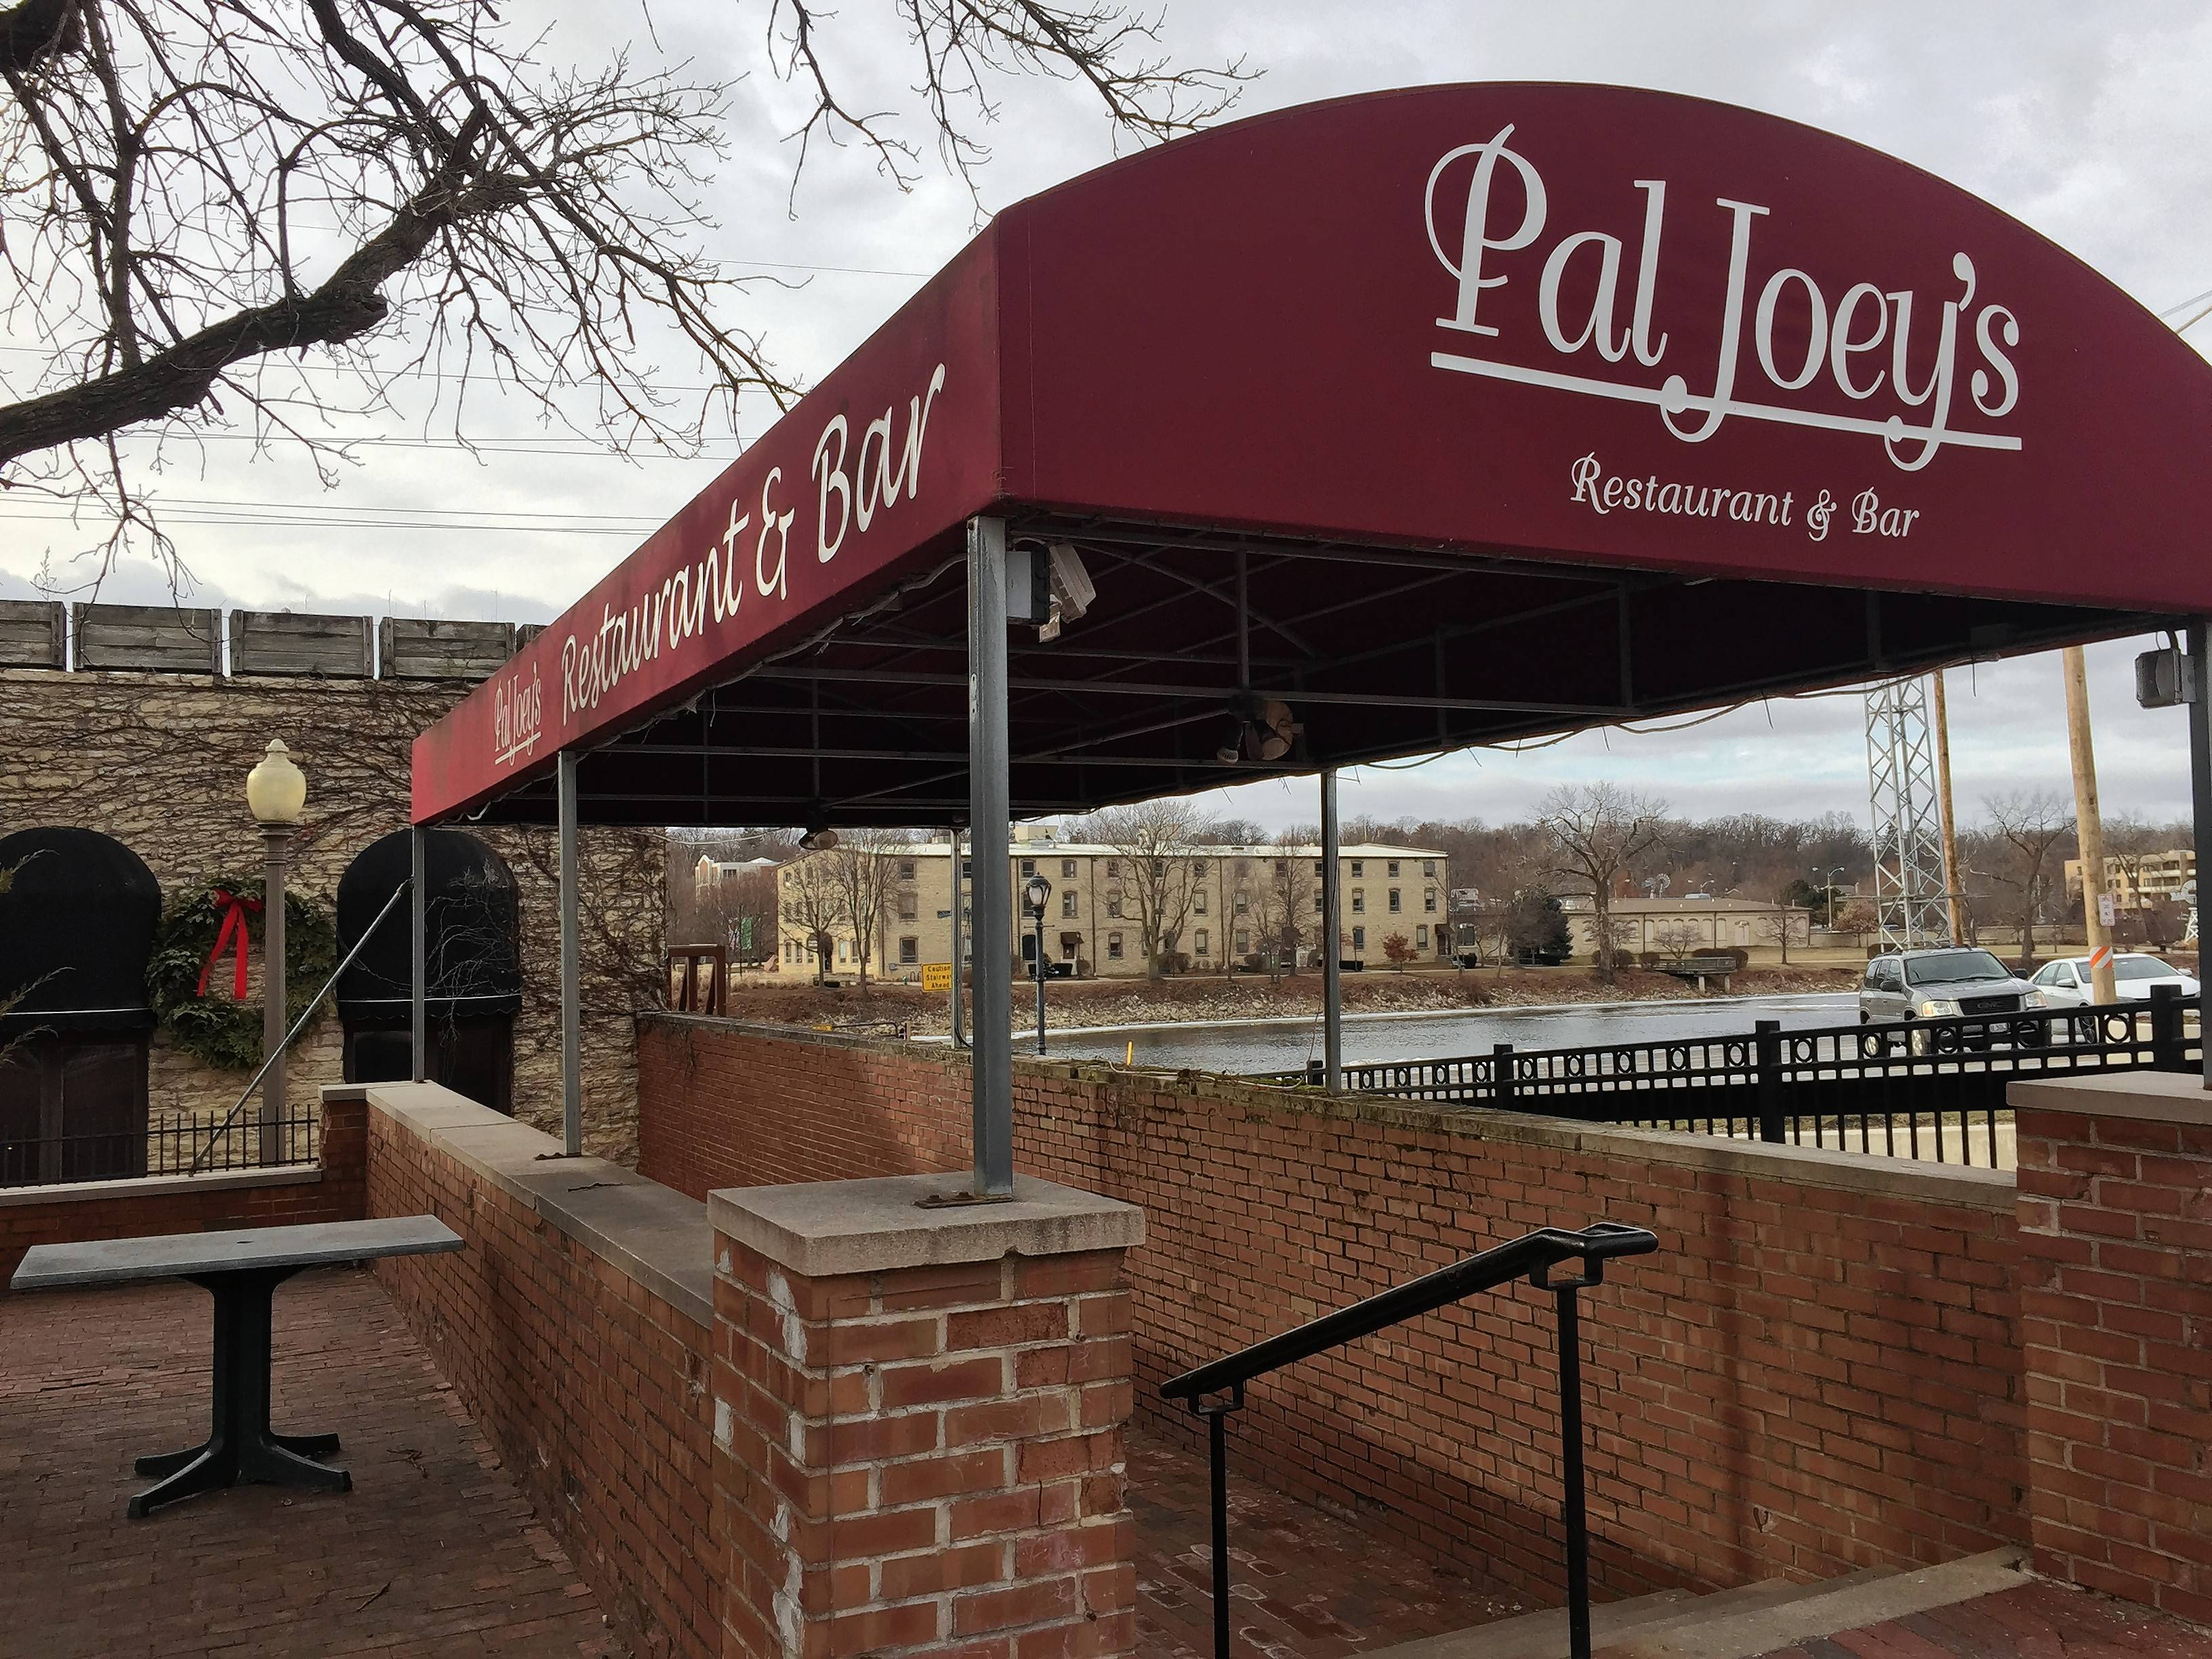 """We can't support the added strain on our budget,"" Pal Joey's owner John Hamel said in regards to a proposed increase in rent for the restuarant's River Street location."